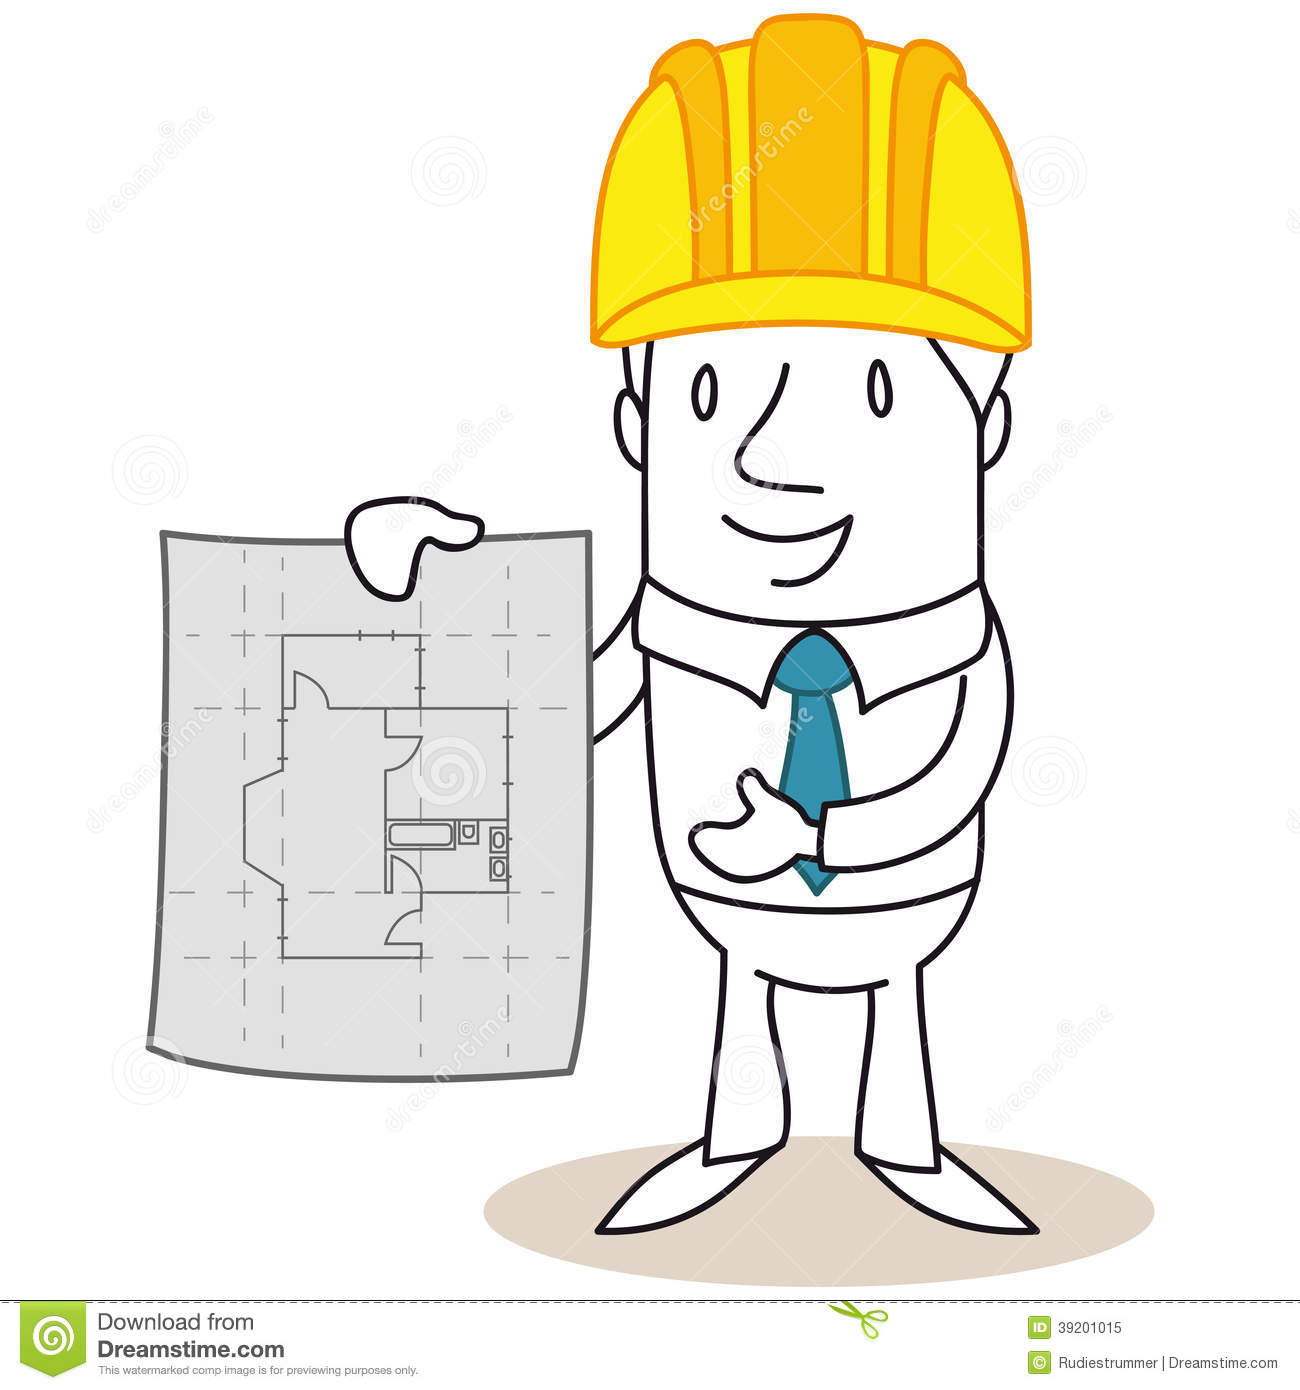 the construction of character in life Building definition, a relatively permanent enclosed construction over a plot of land, having a roof and usually windows and often more than one level, used for any.